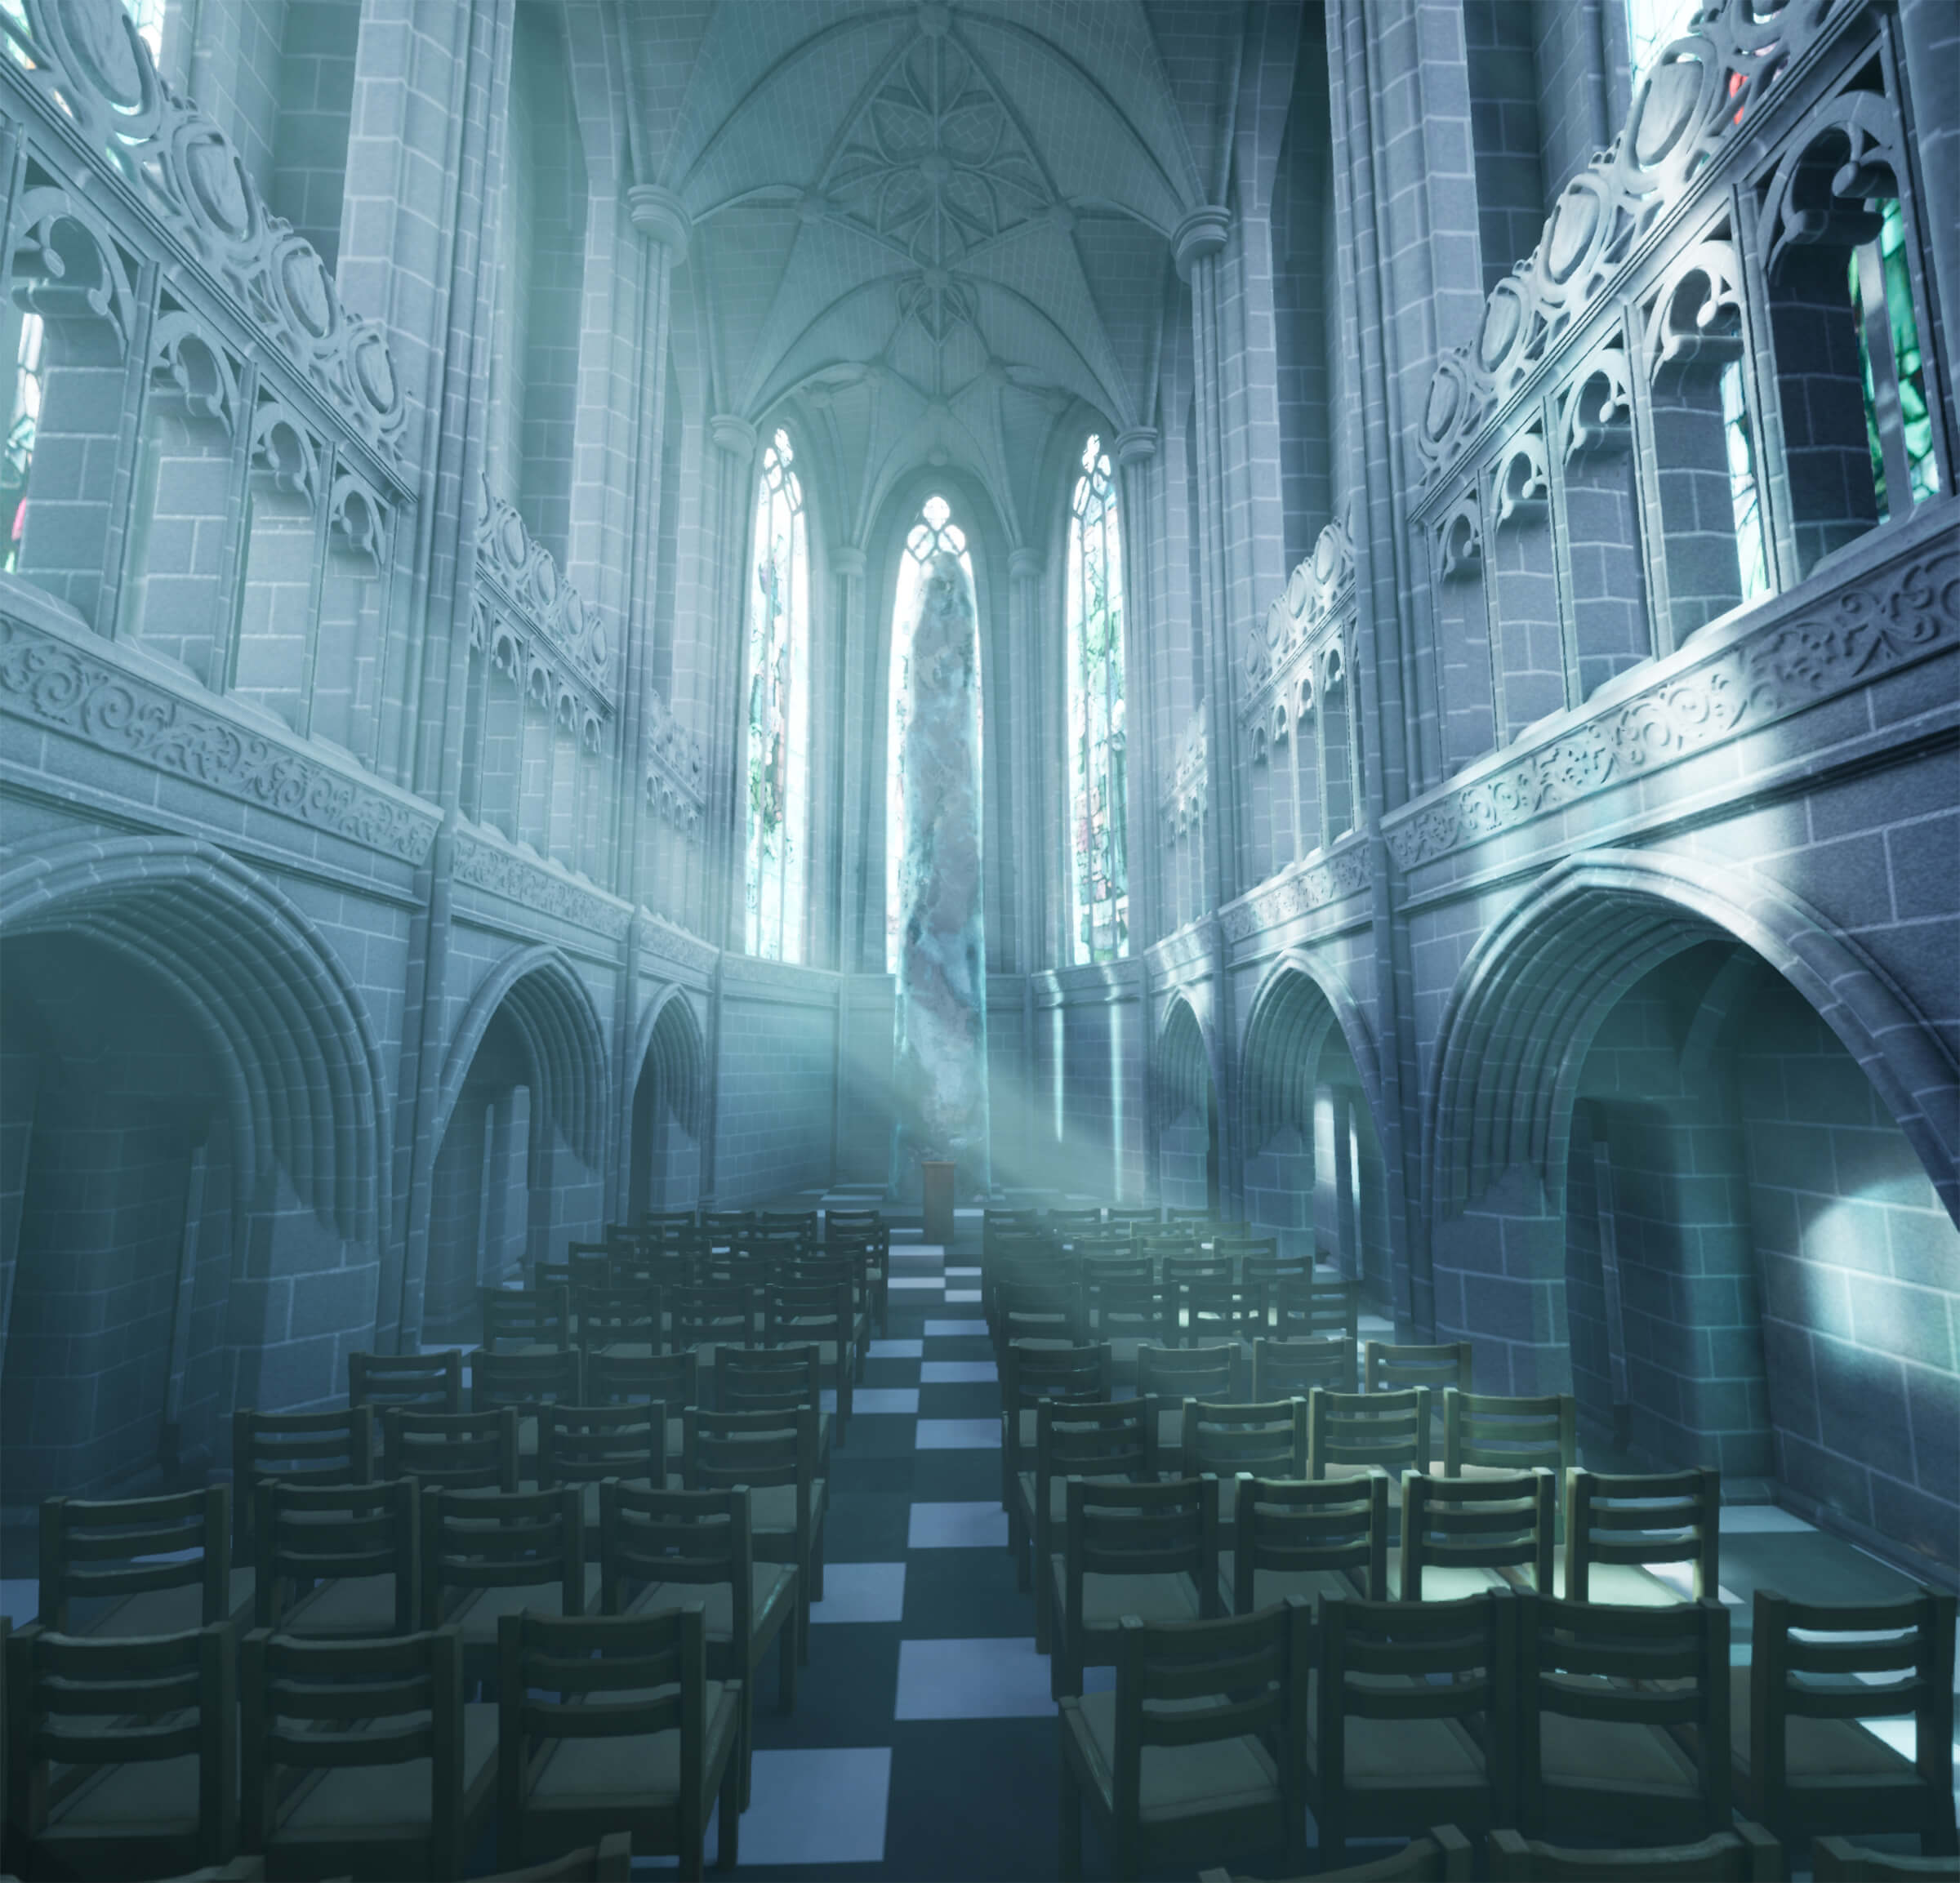 A cathedral with chairs lined up, light streaming through high windows